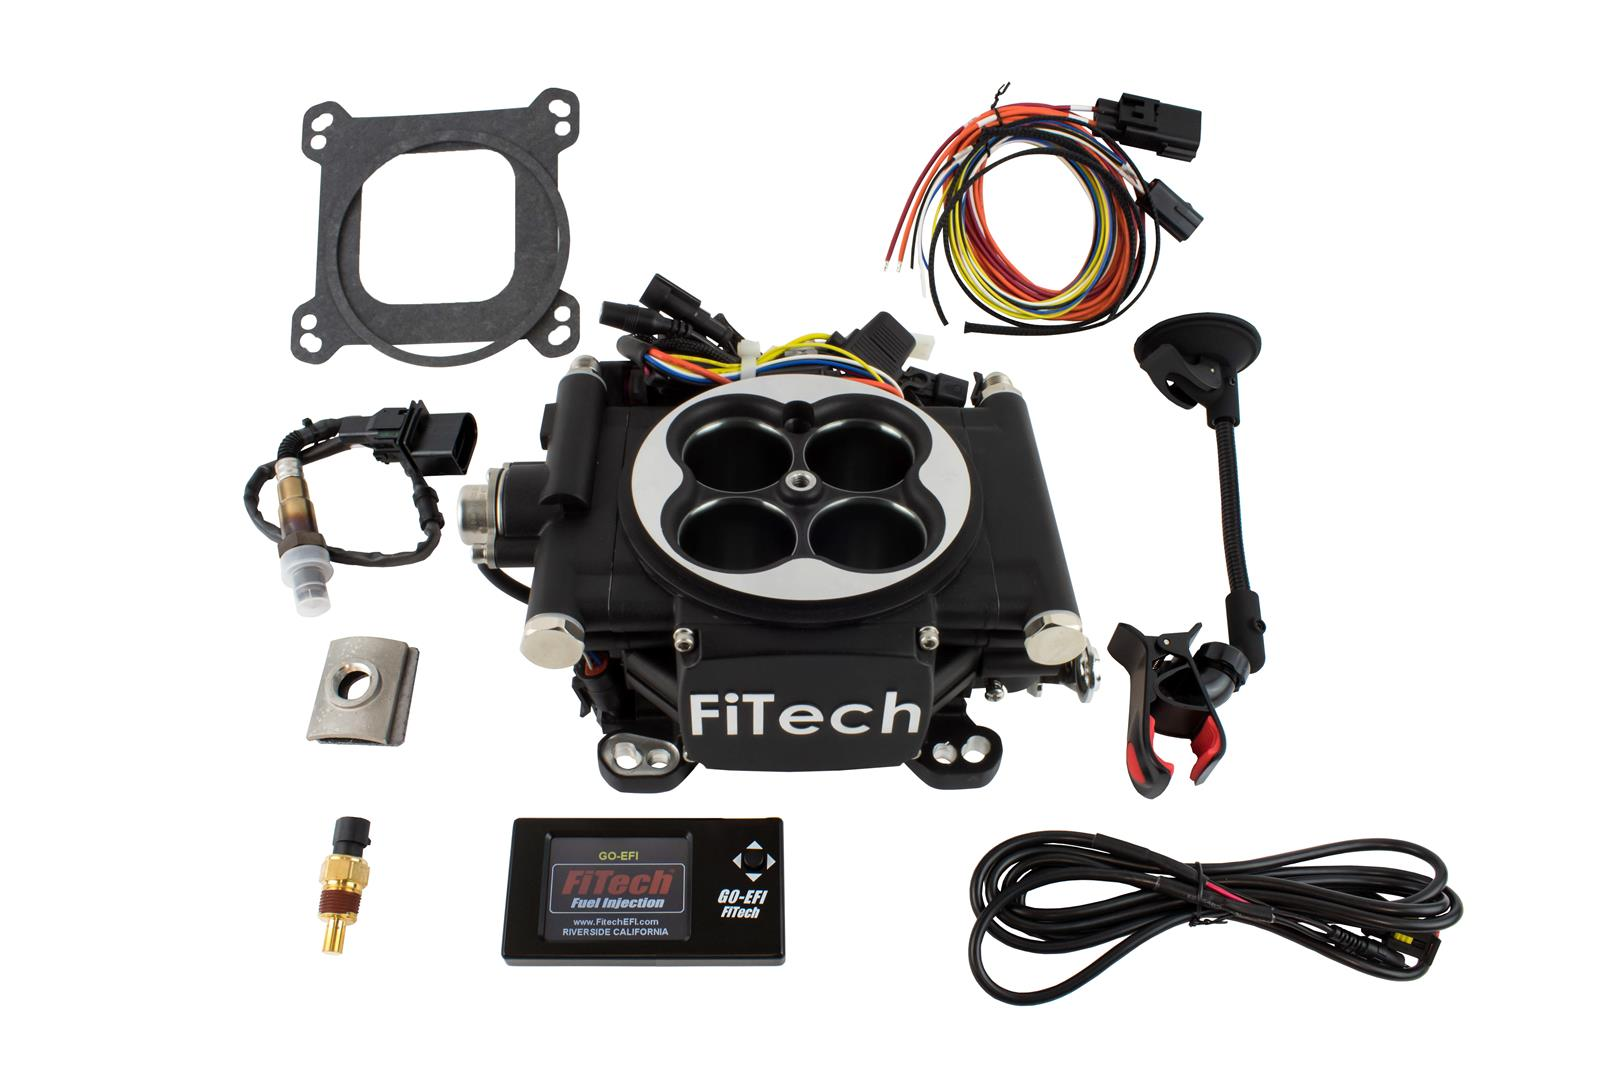 Fitech Go Efi 4 600 Hp Self Tuning Fuel Injection Systems 30002 Tbi Wiring Diagram Free Shipping On Orders Over 99 At Summit Racing